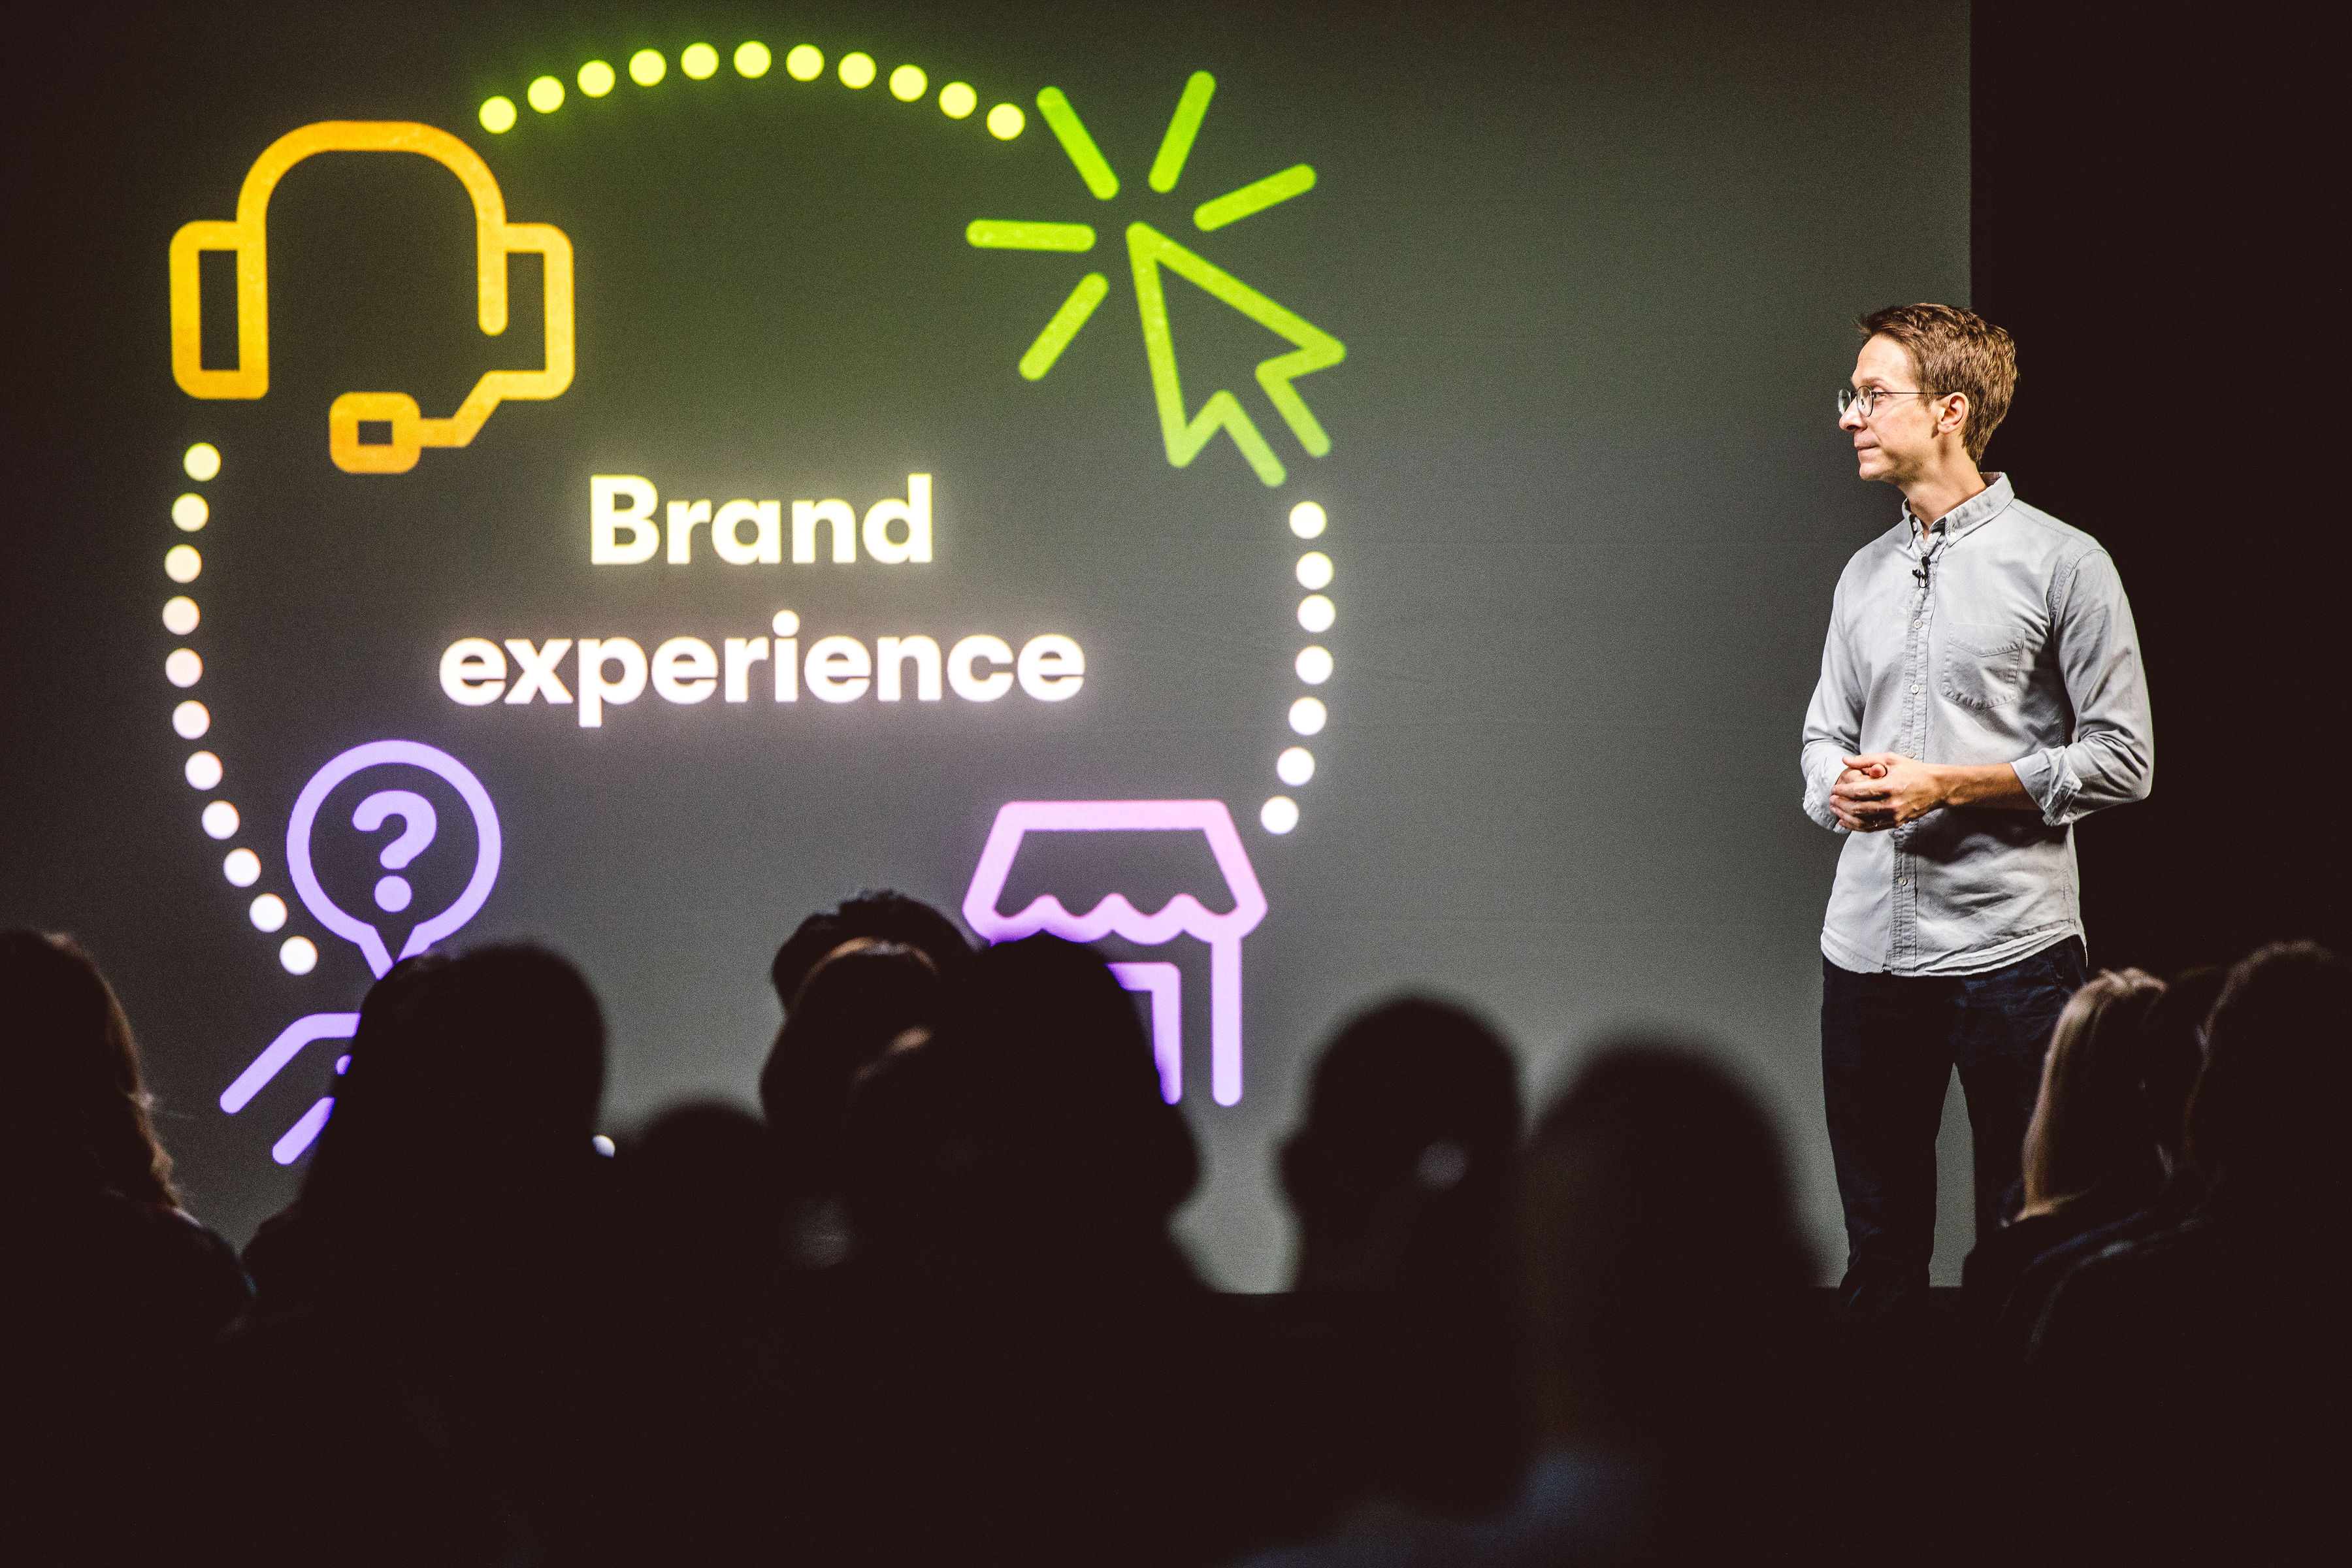 Why Your Business's Brand is More Important Than Ever